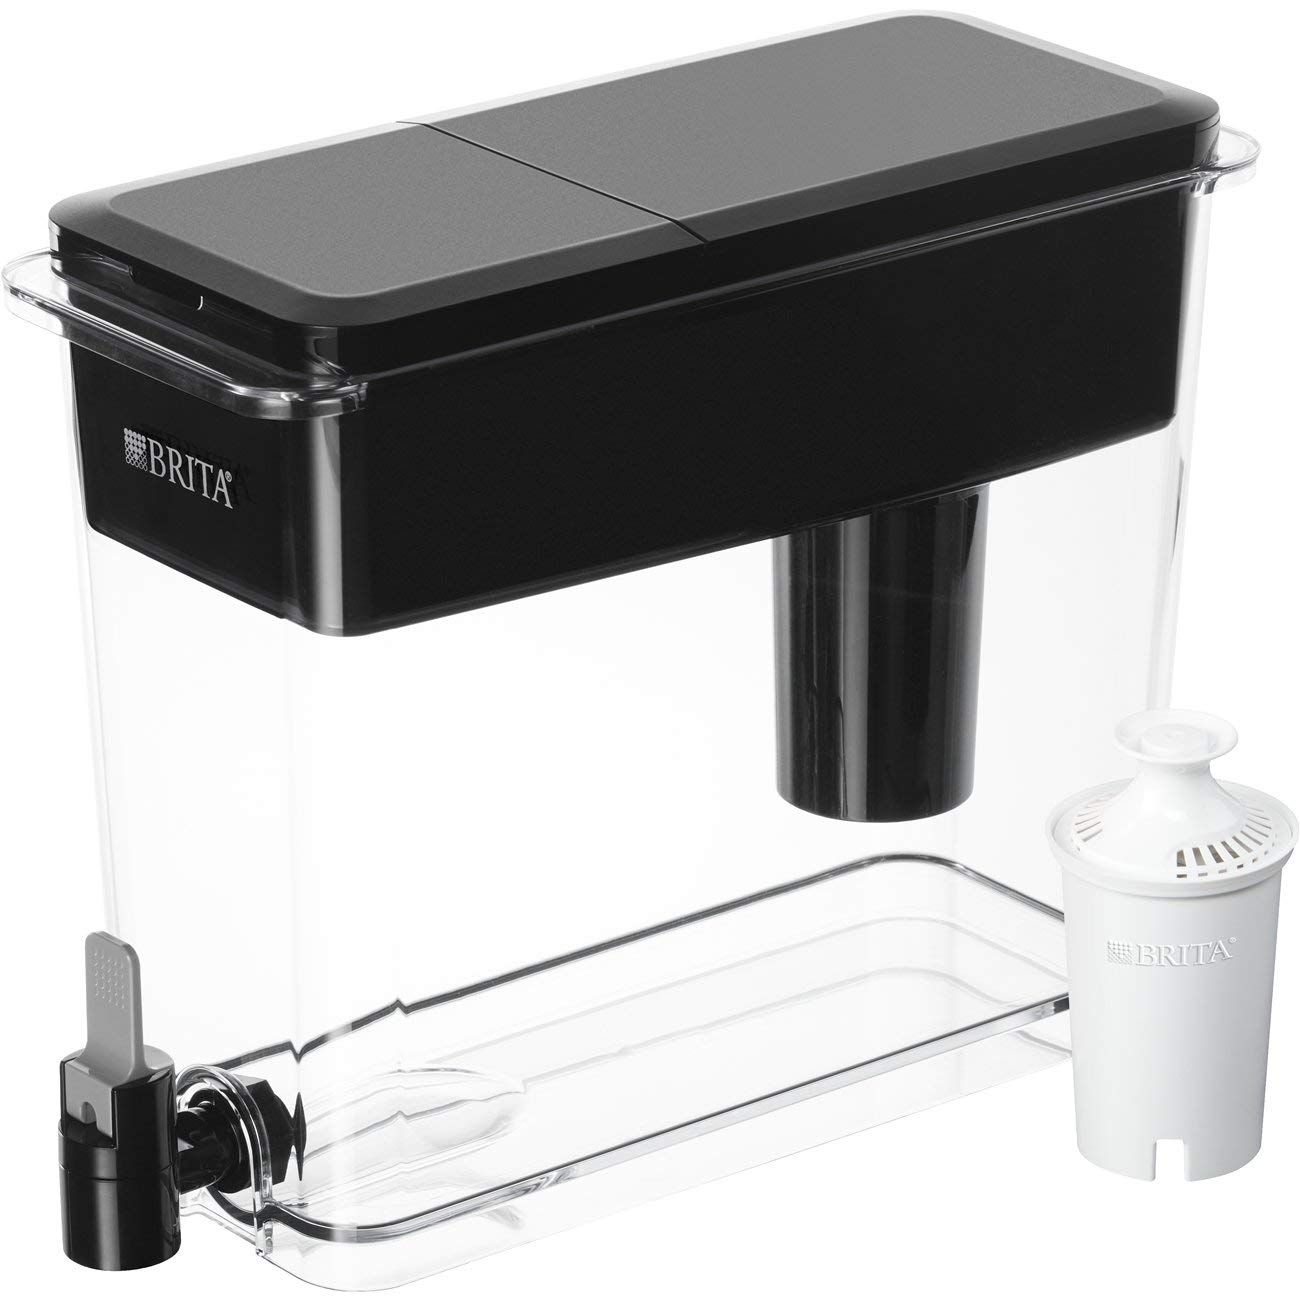 Amazon.com: Brita Extra Large 18 Cup UltraMax Water Dispenser and ...